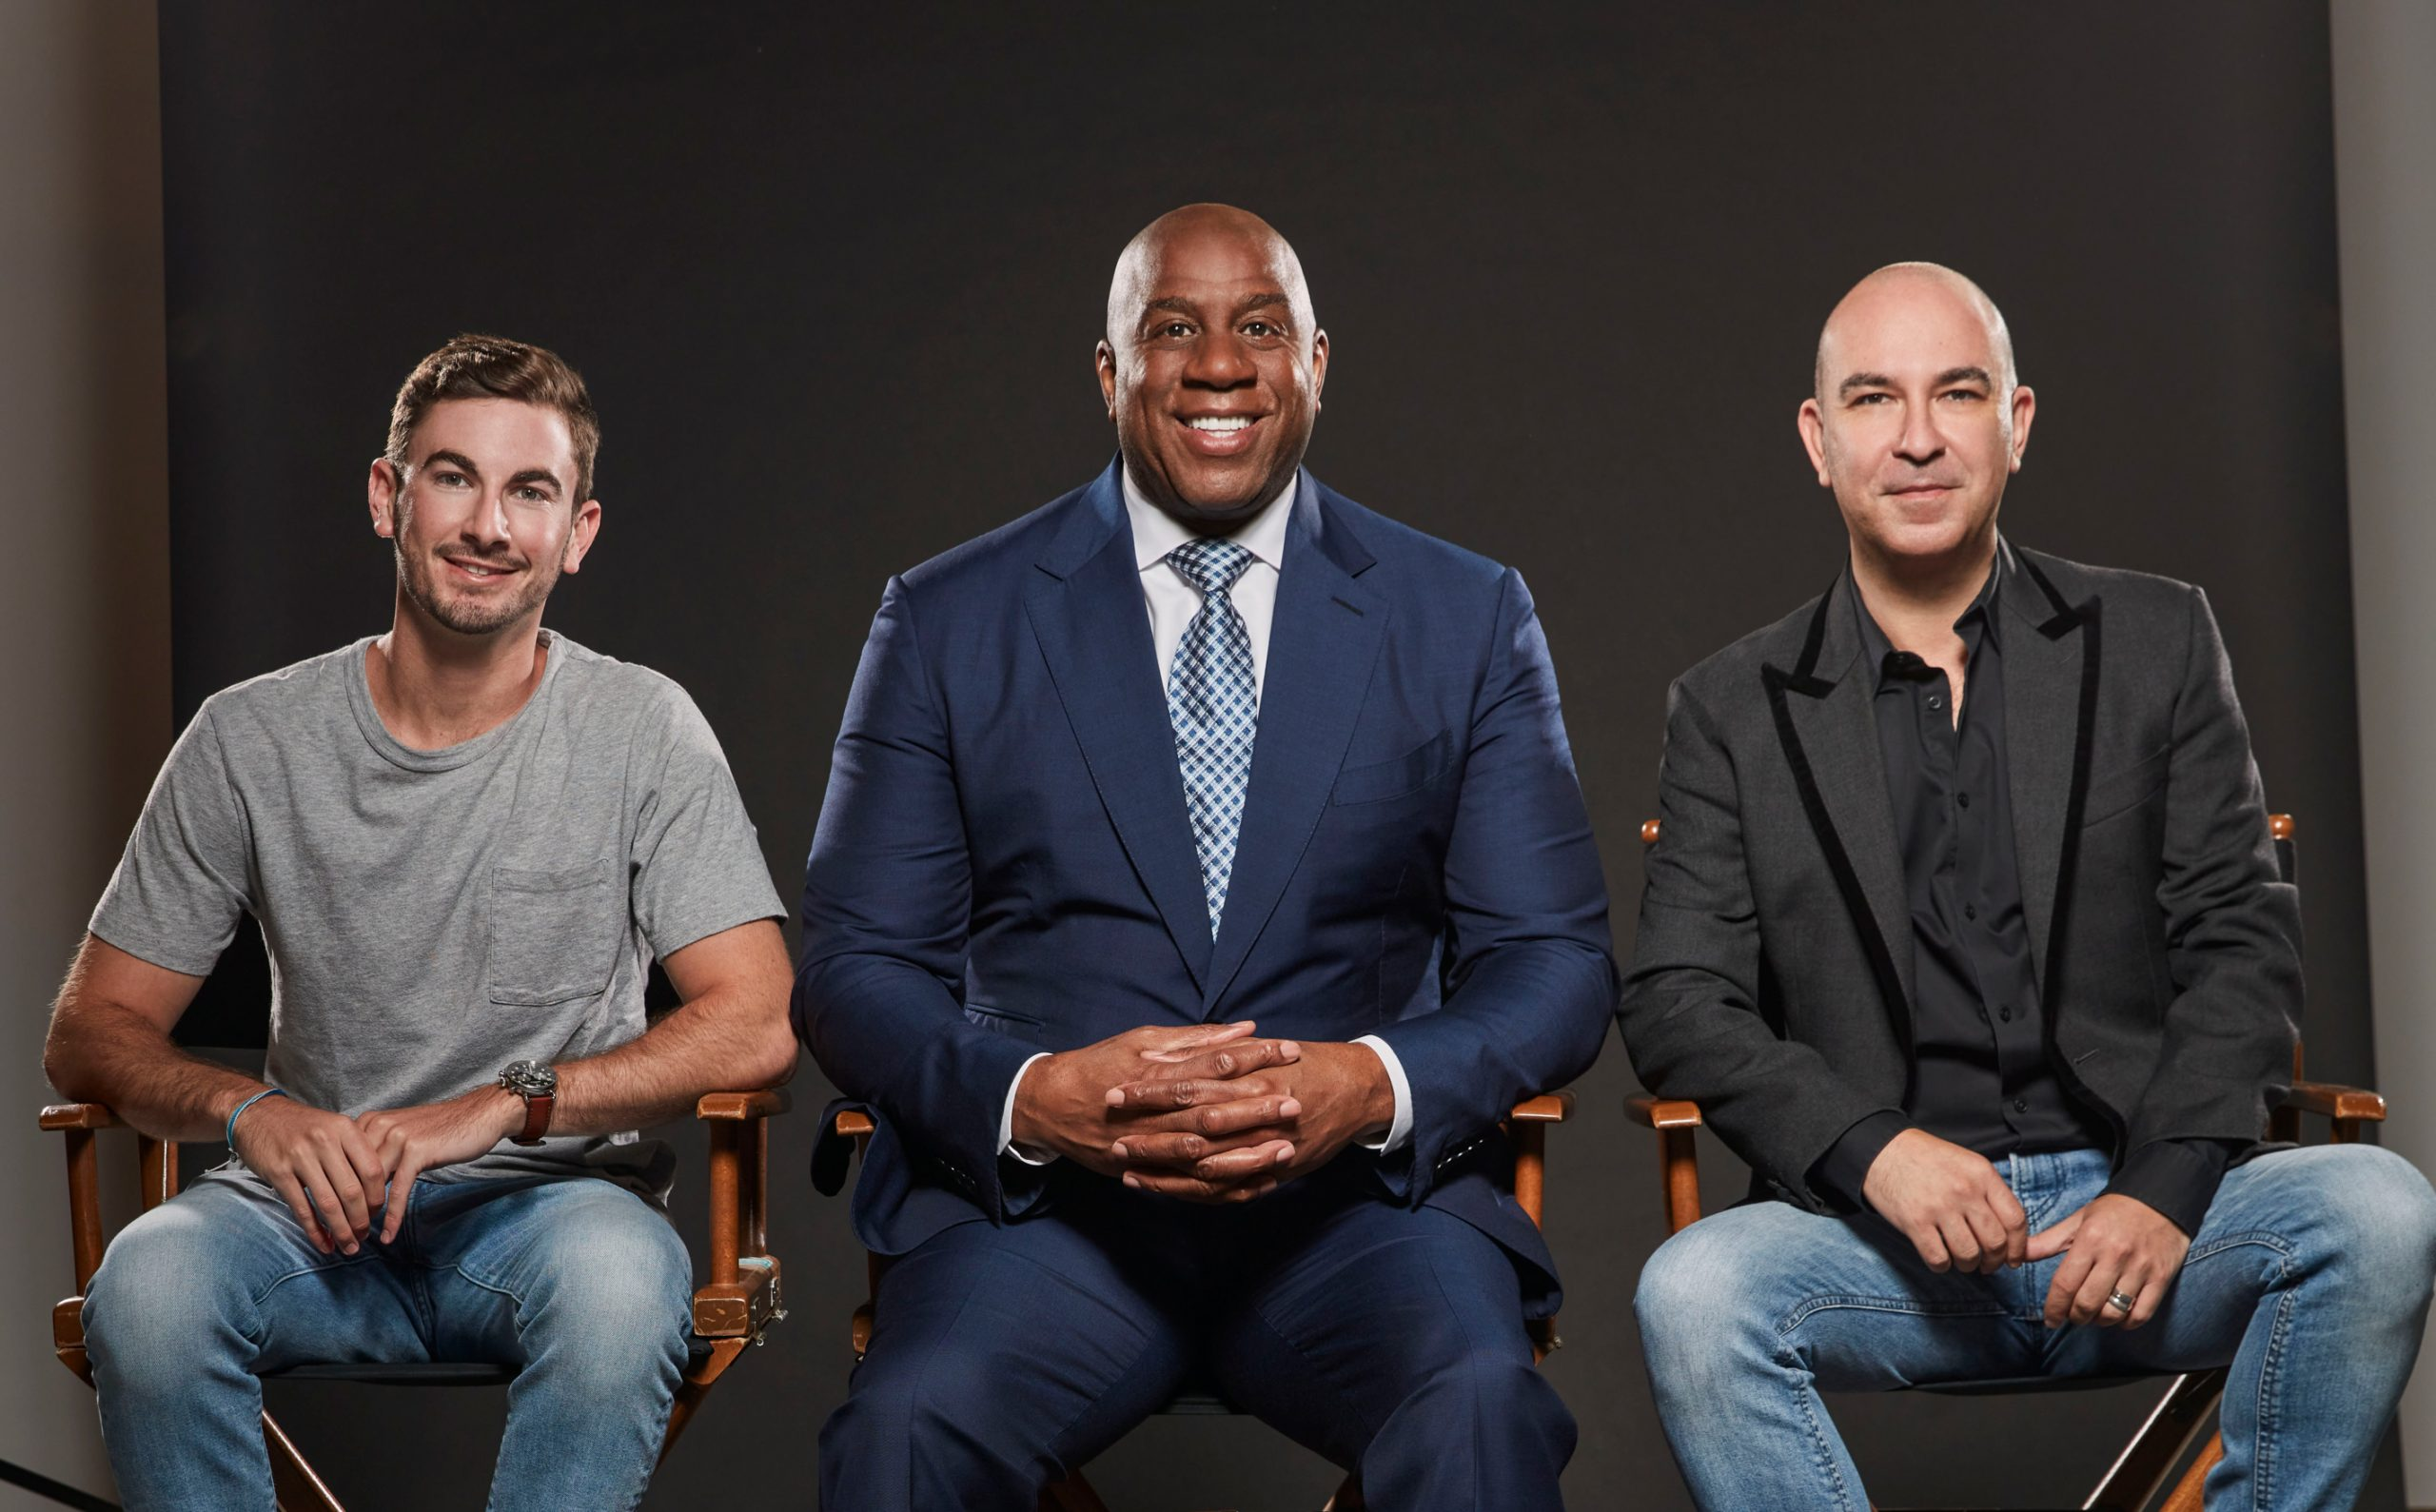 Uncle Bud's founders with Magic Johnson smiling at the camera